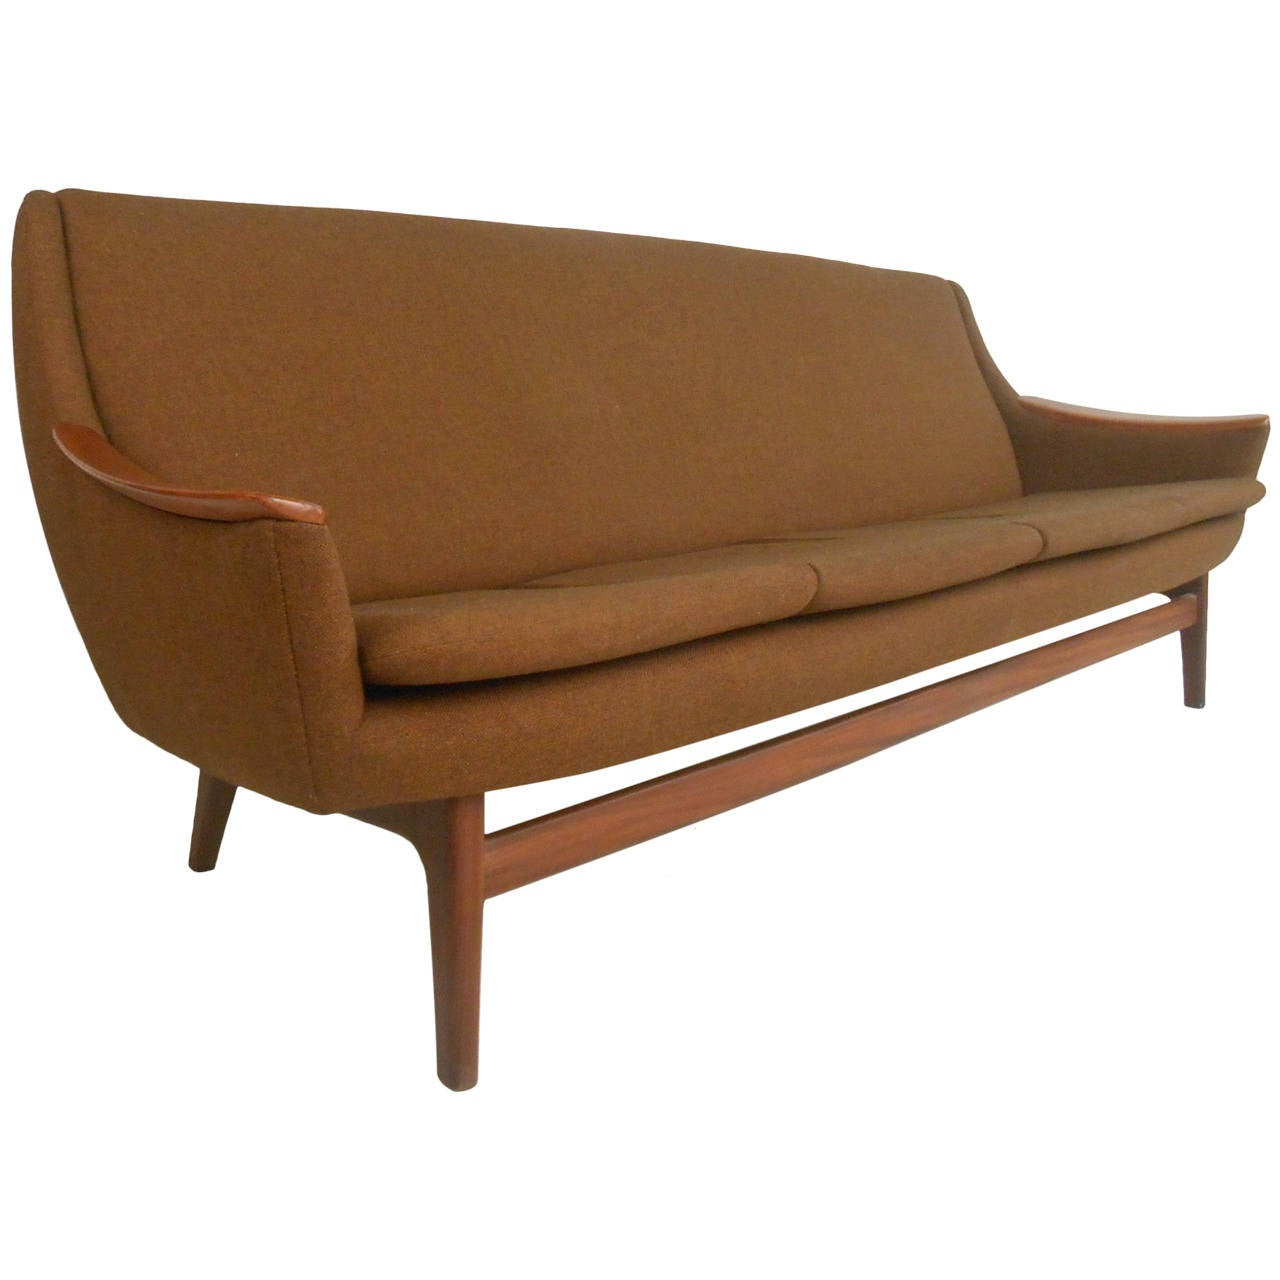 Long scandinavian modern sofa for sale at 1stdibs for Modern furniture sofa